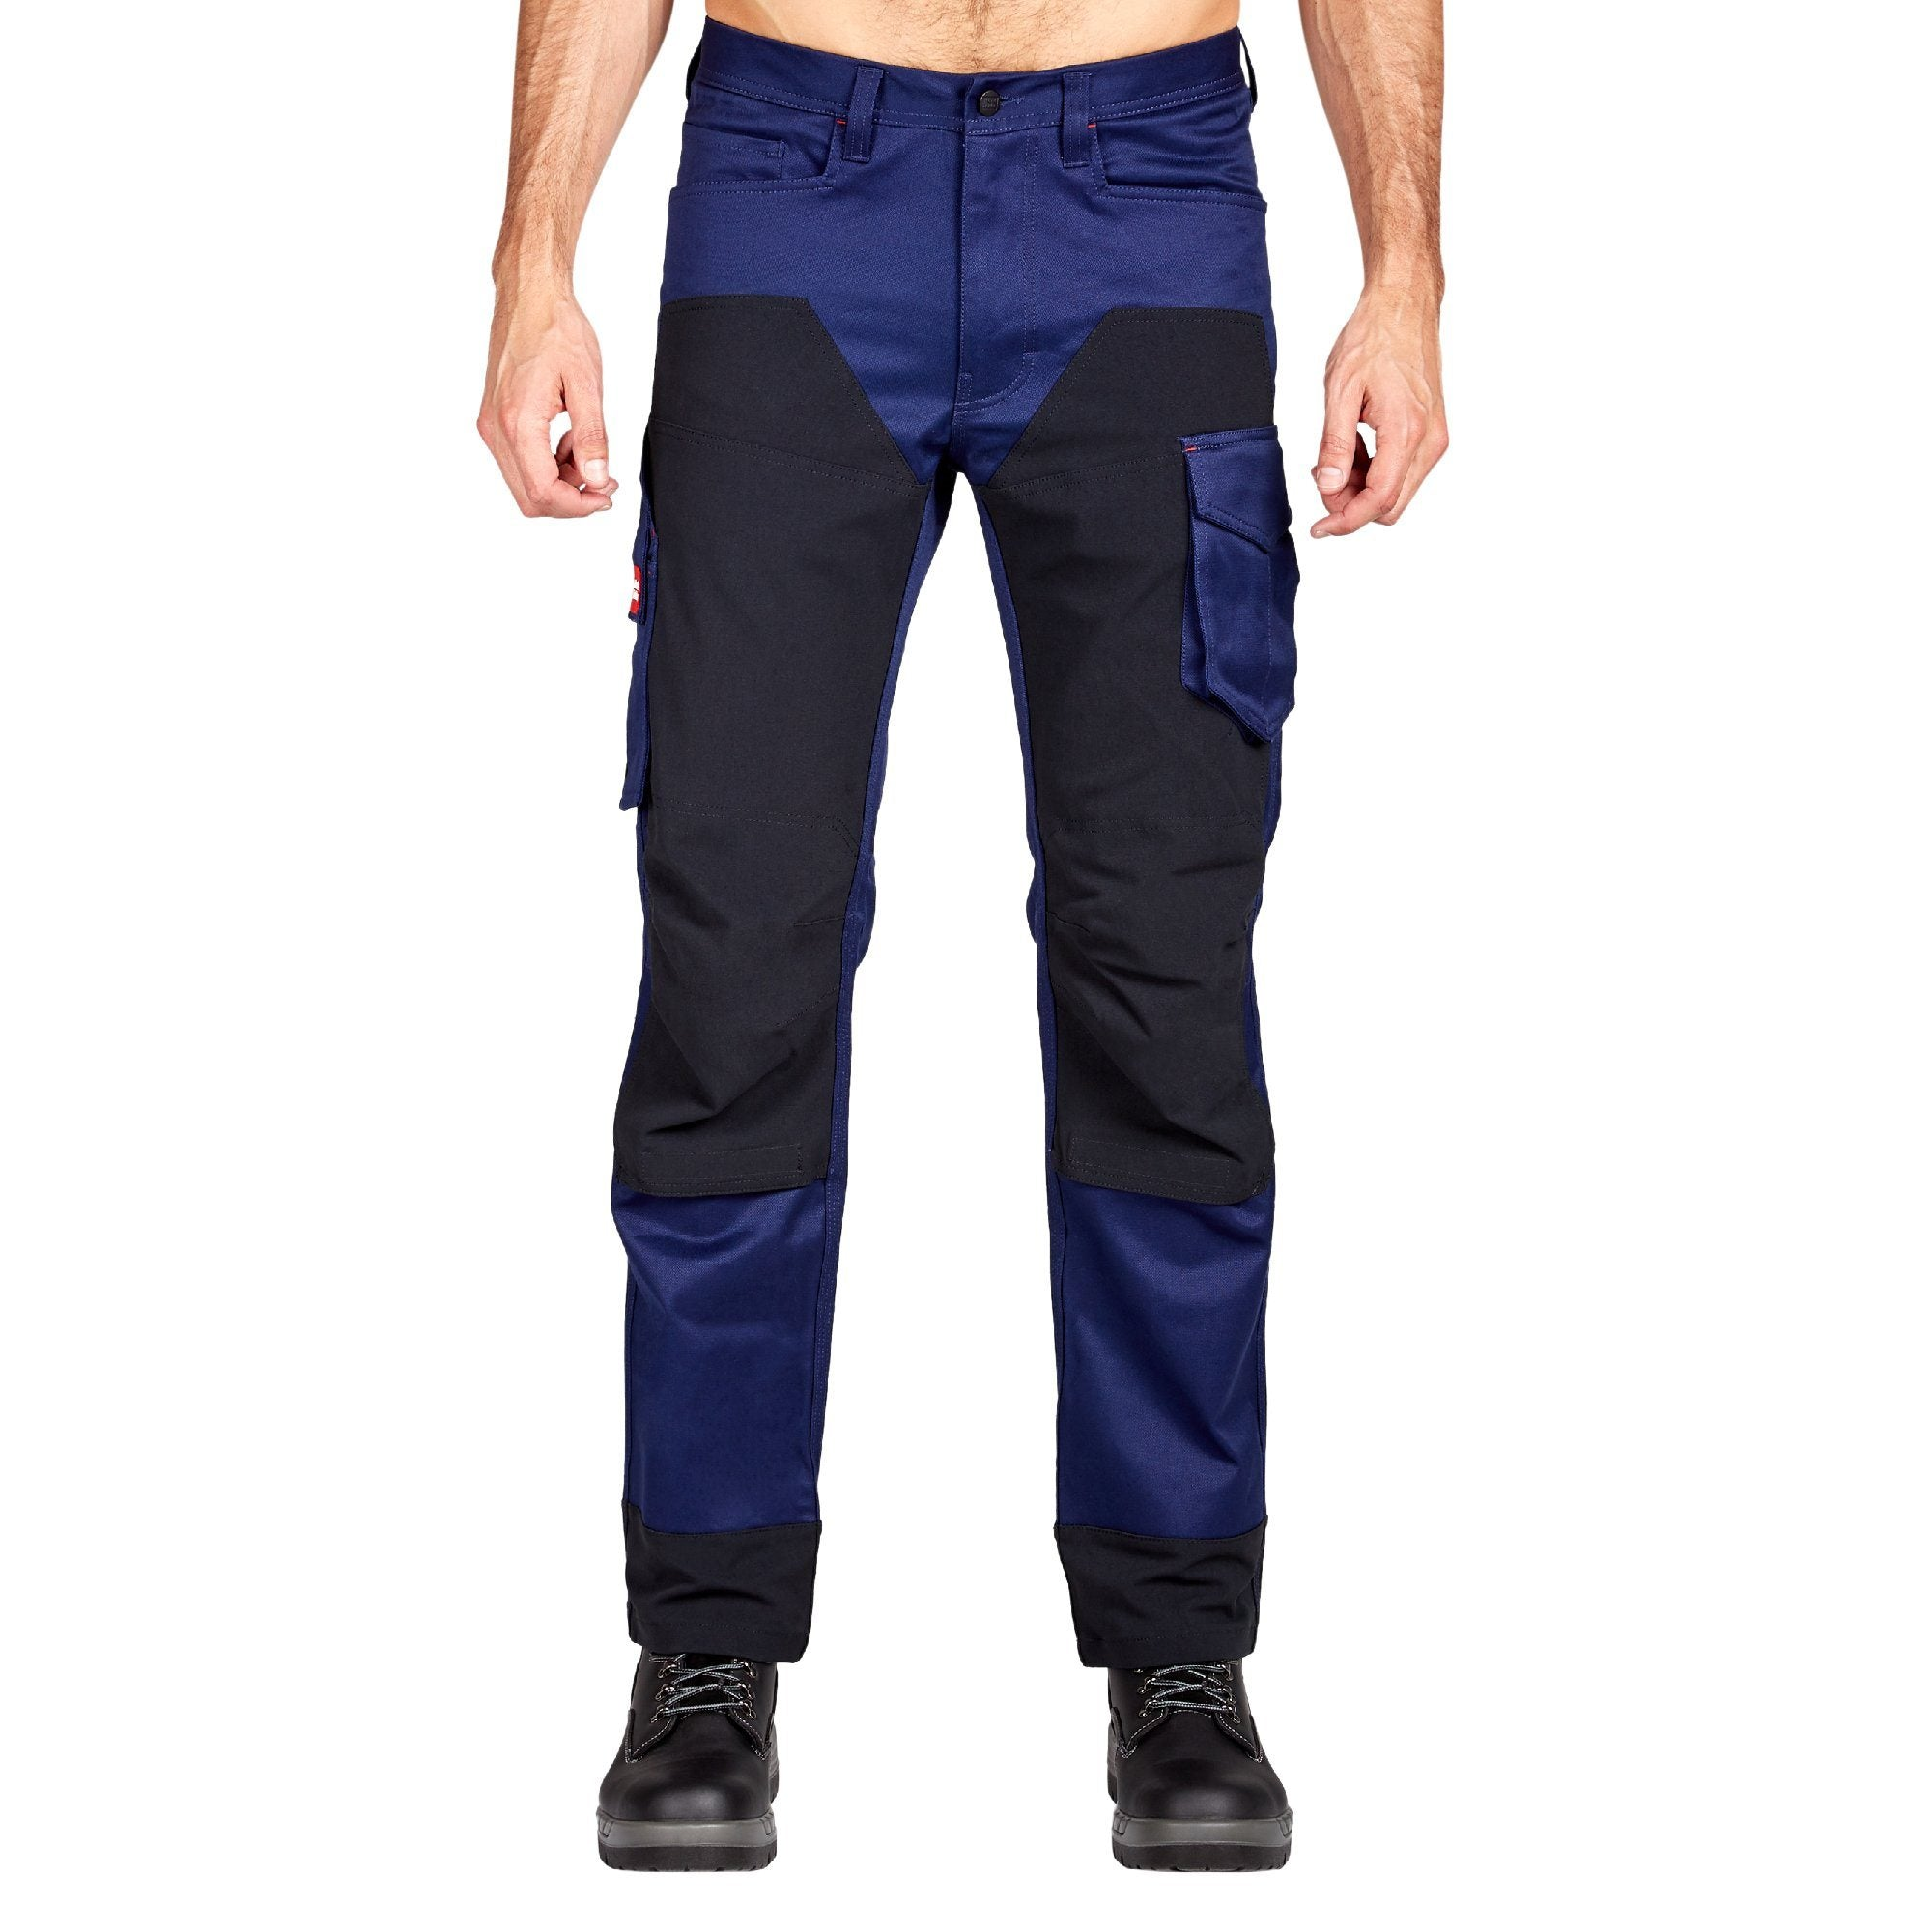 Hard Yakka Legends 3D Stretch Pants - Navy/Black Workwear Isbister & Co